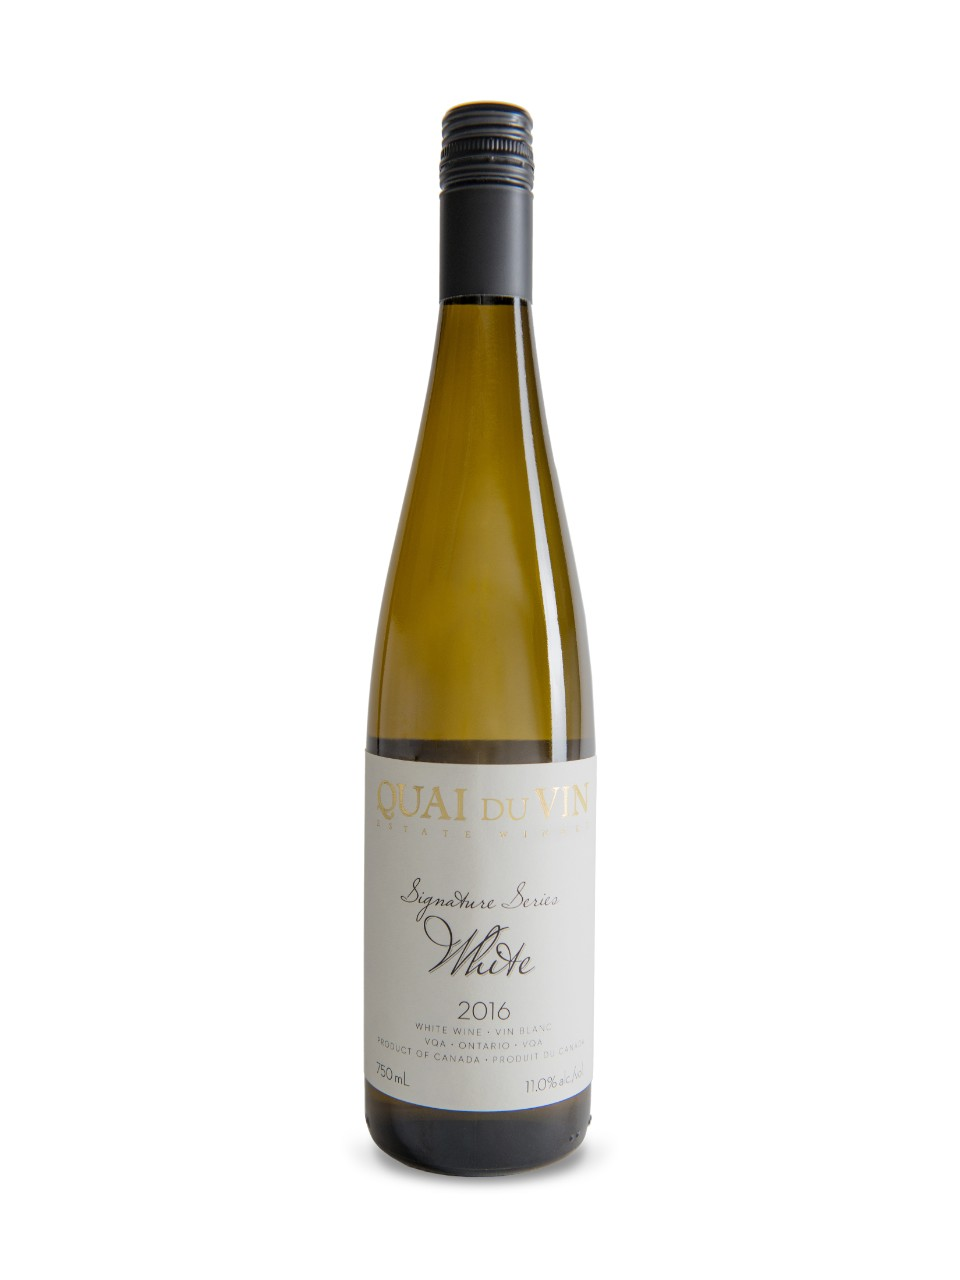 Quai Du Vin Signature Series White VQA